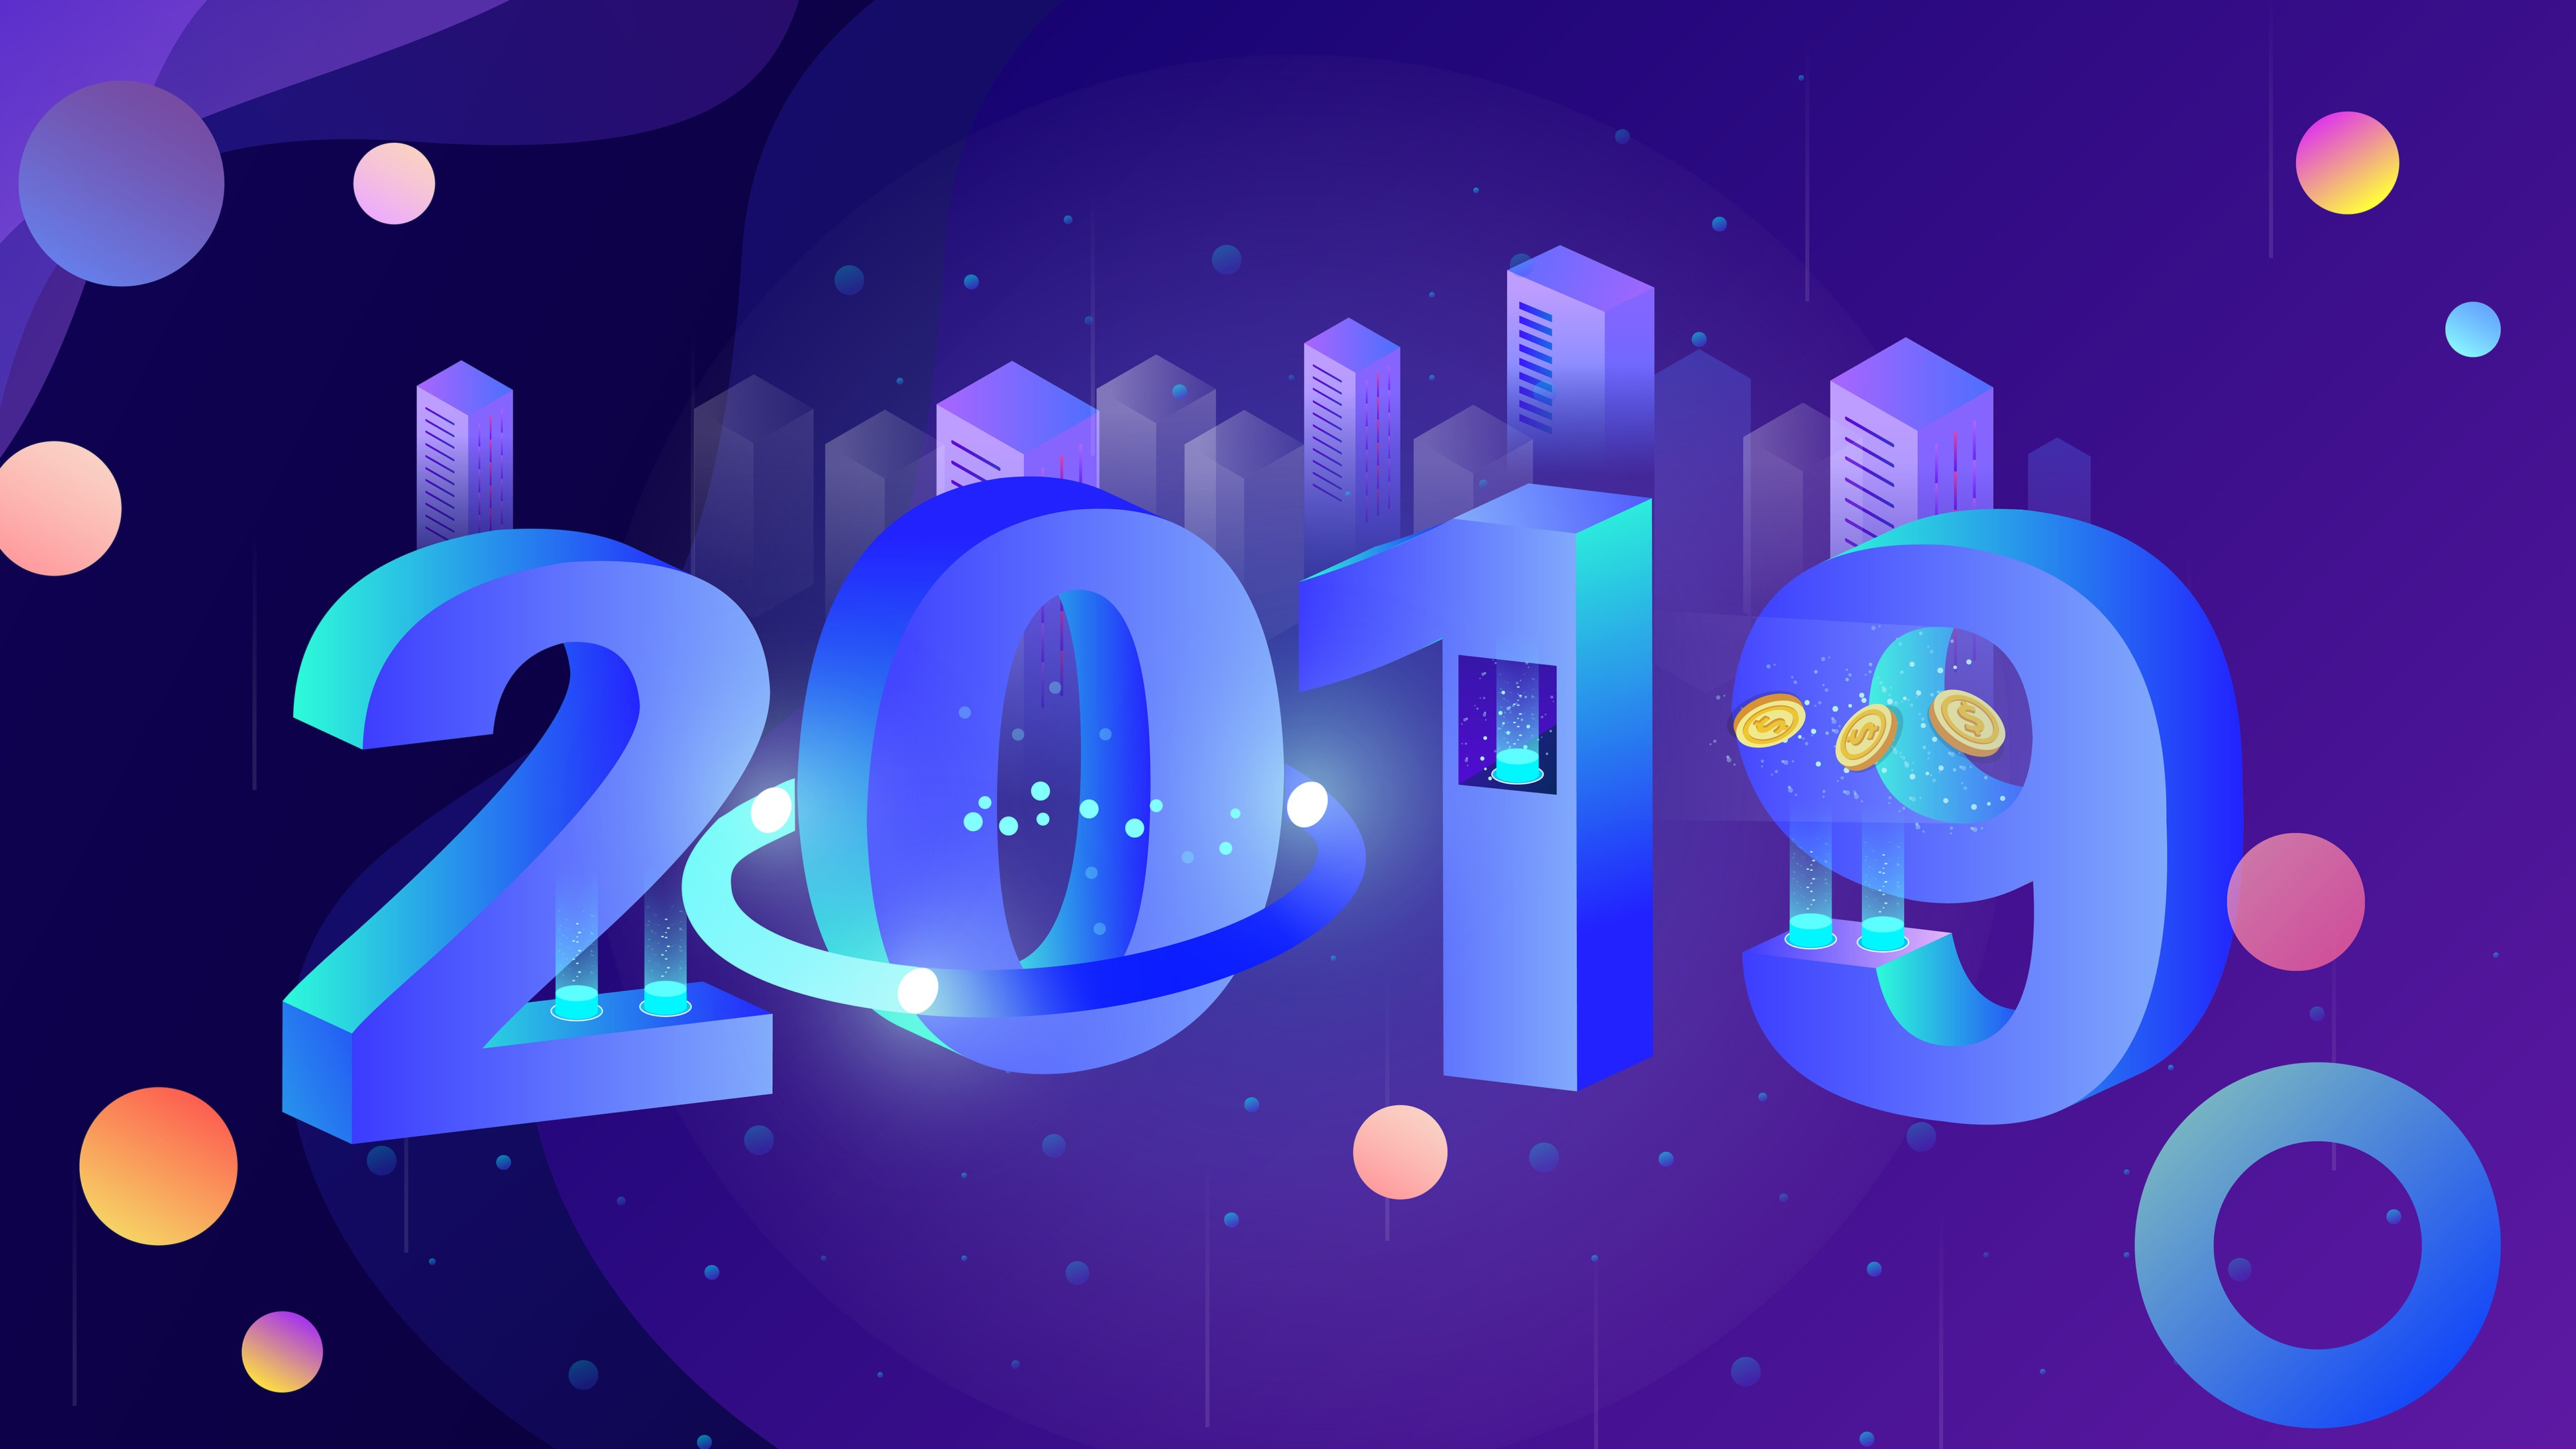 2019 New Year 3D Vector Art 4k Wallpaper 3840x2160